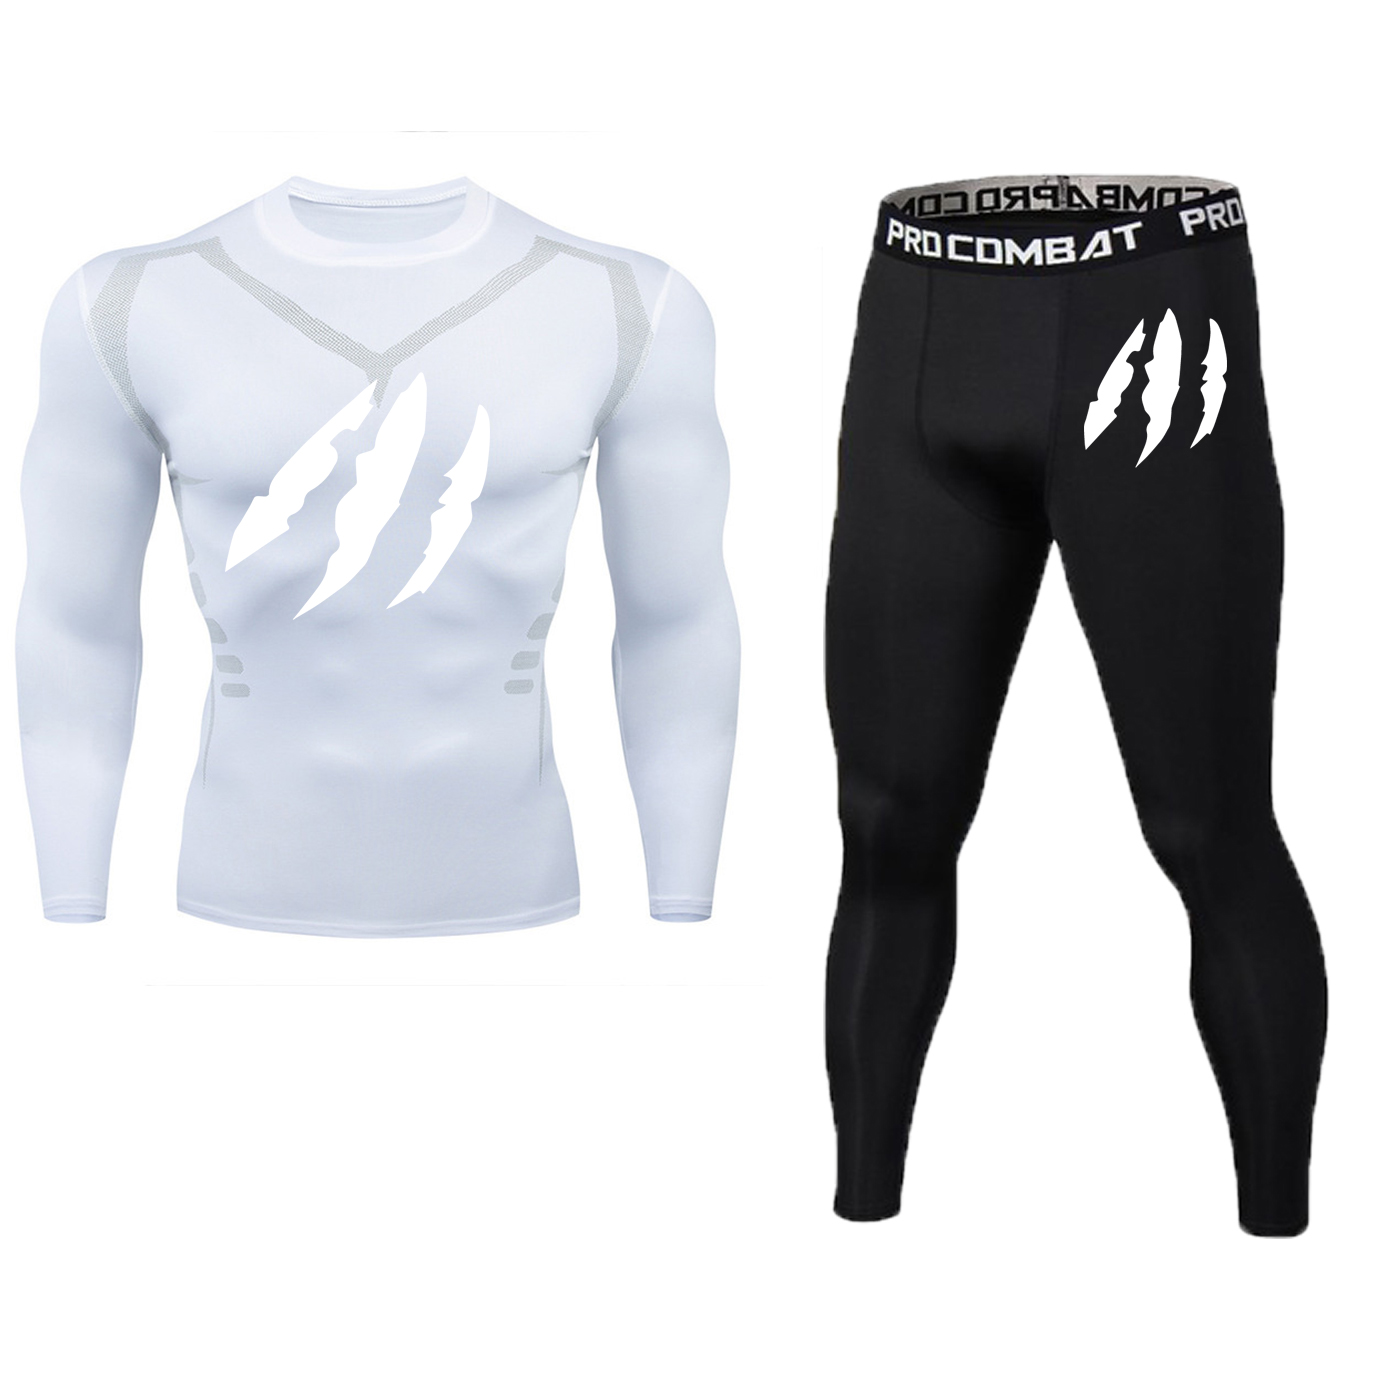 24-hour Delivery Men's Long-sleeved Compression Gym Tights Sportswear Suit Training Suits Sports Running Clothes Service Sports